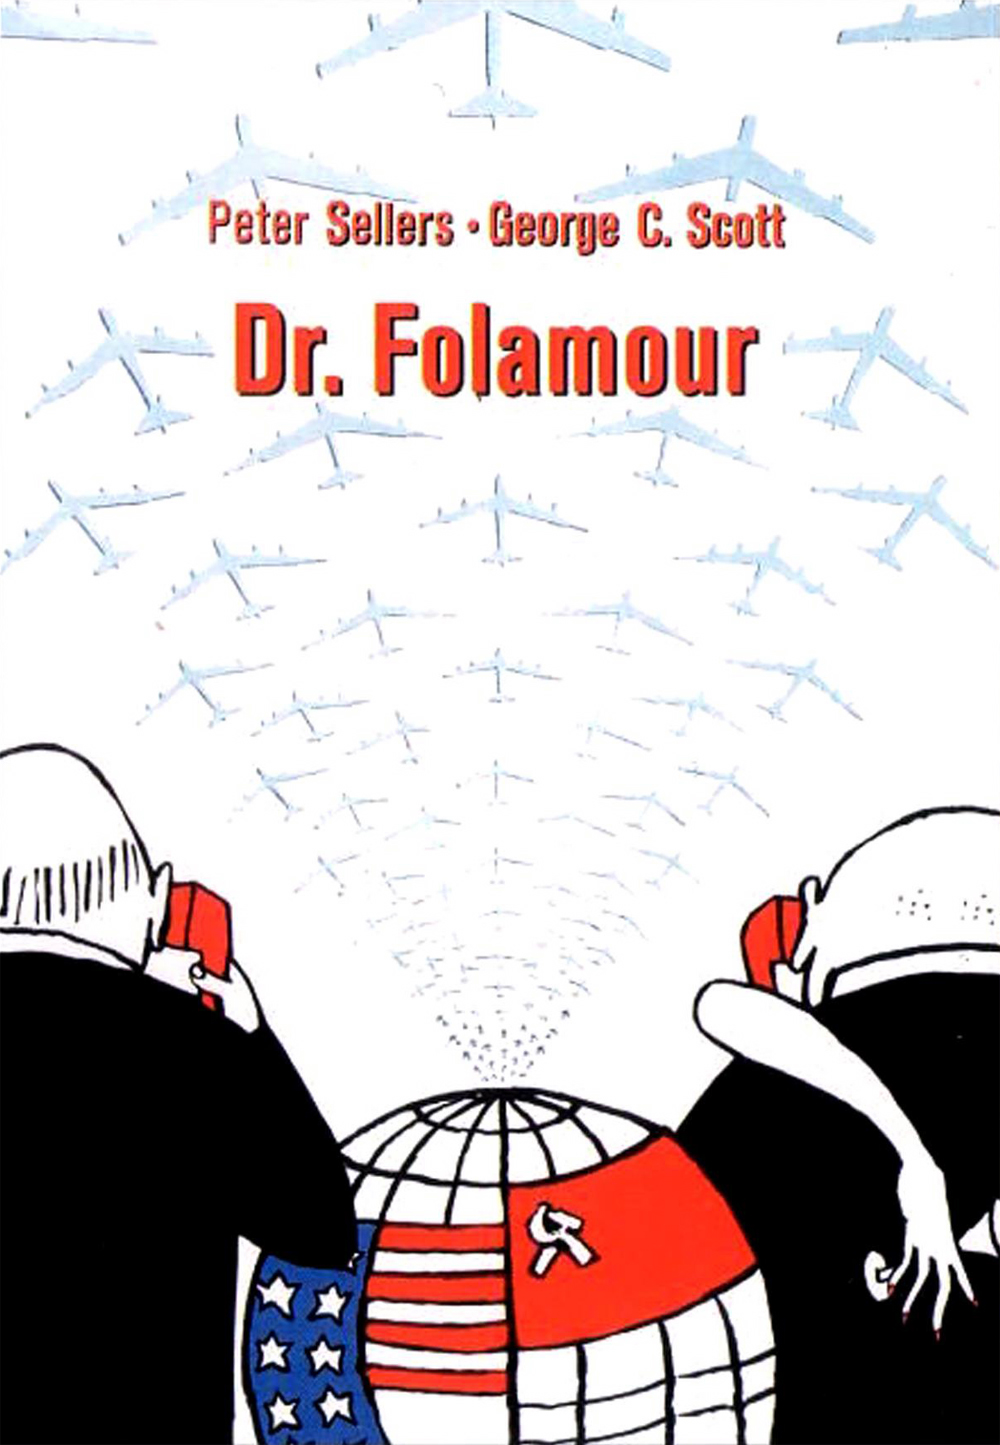 Doctor Folamour